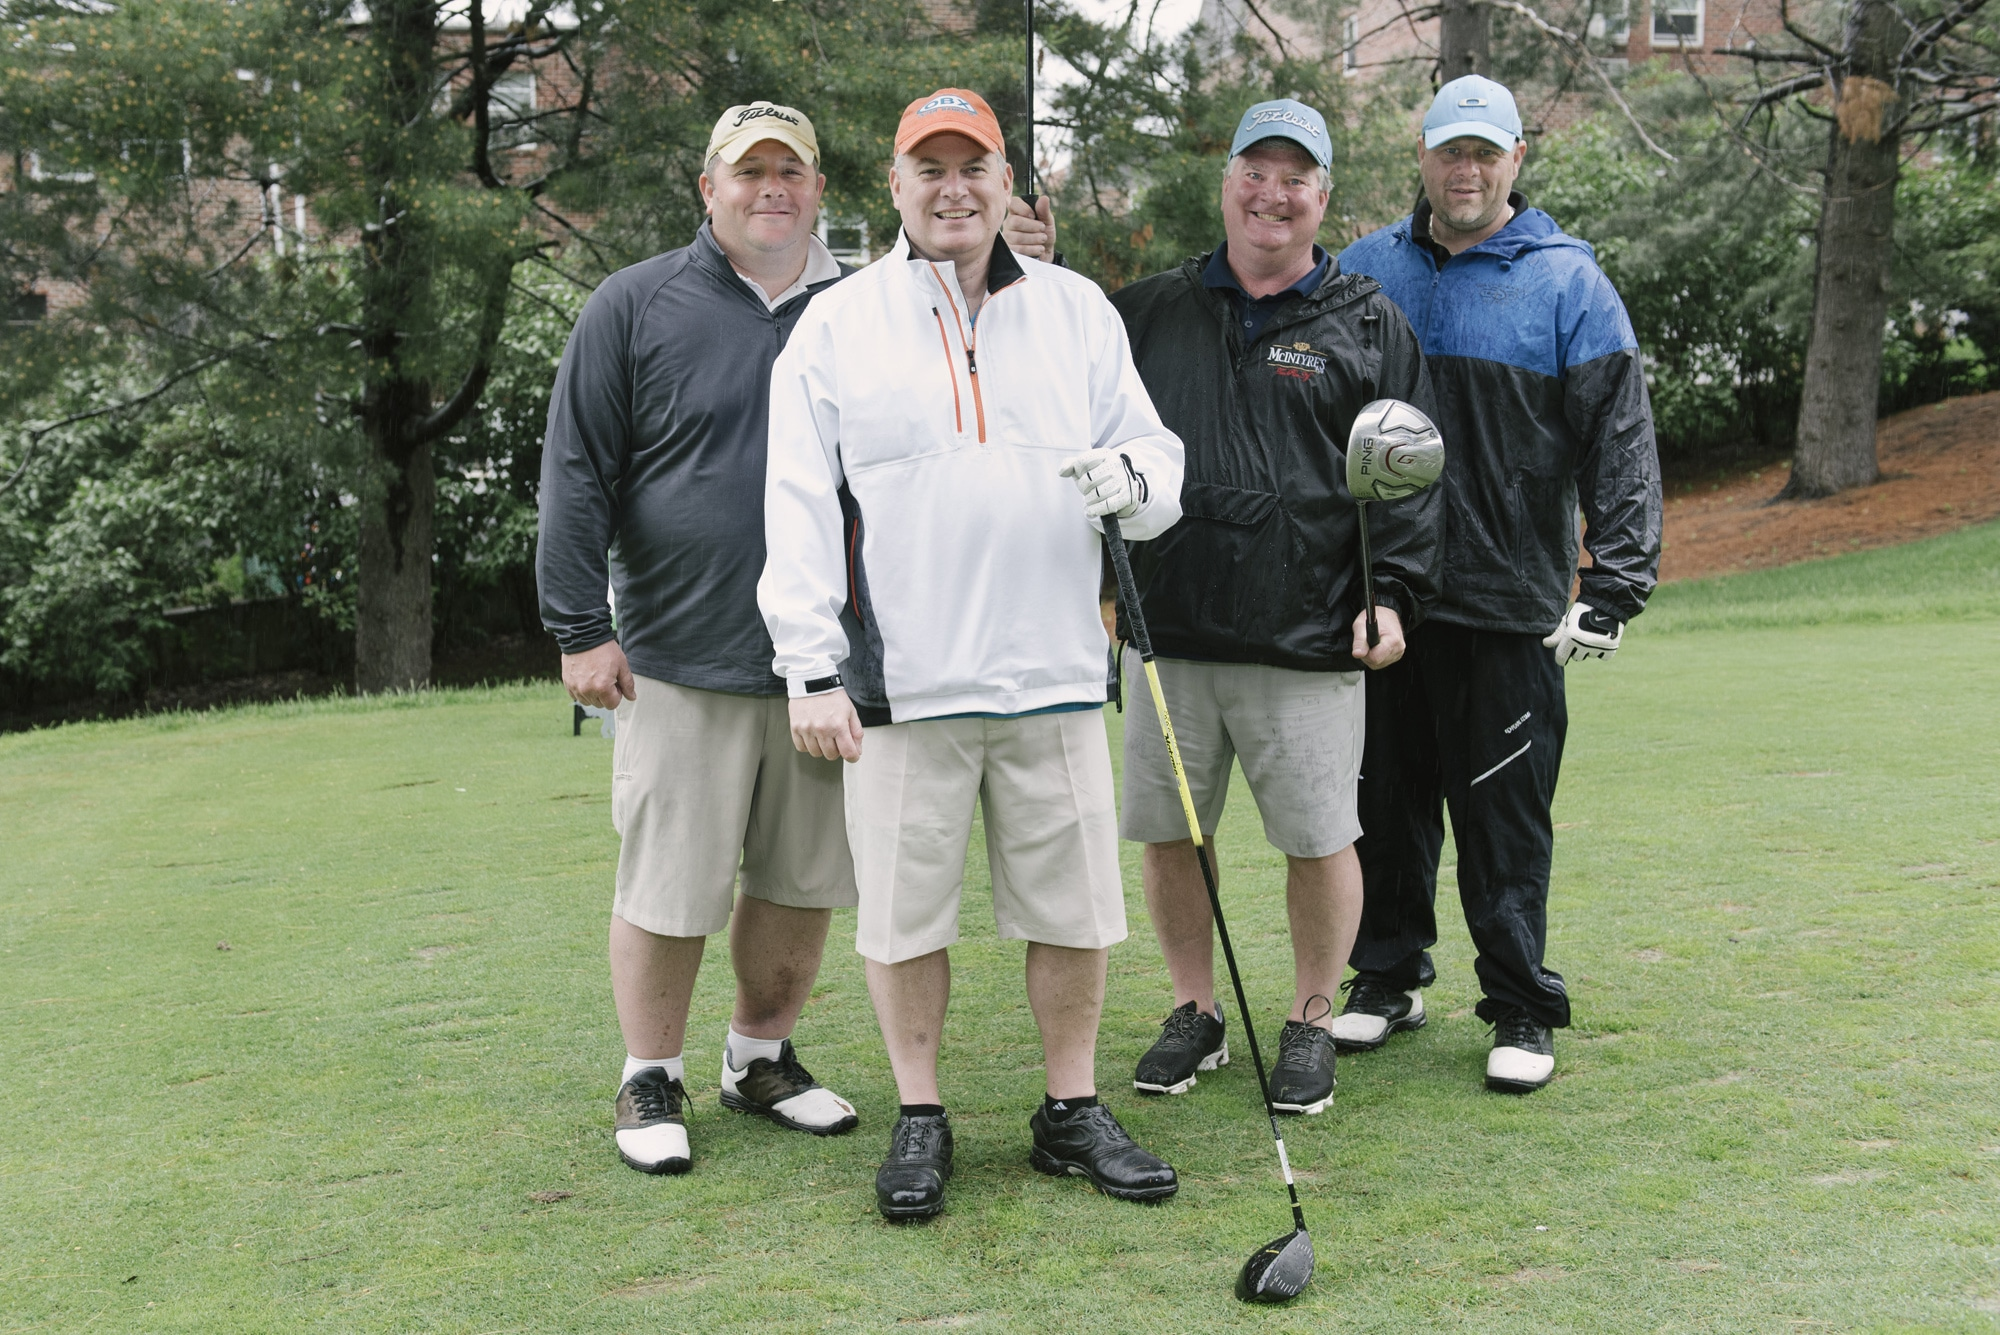 May 22, 2017 Community Options, Inc. Spring Golf Classic at Torresdale